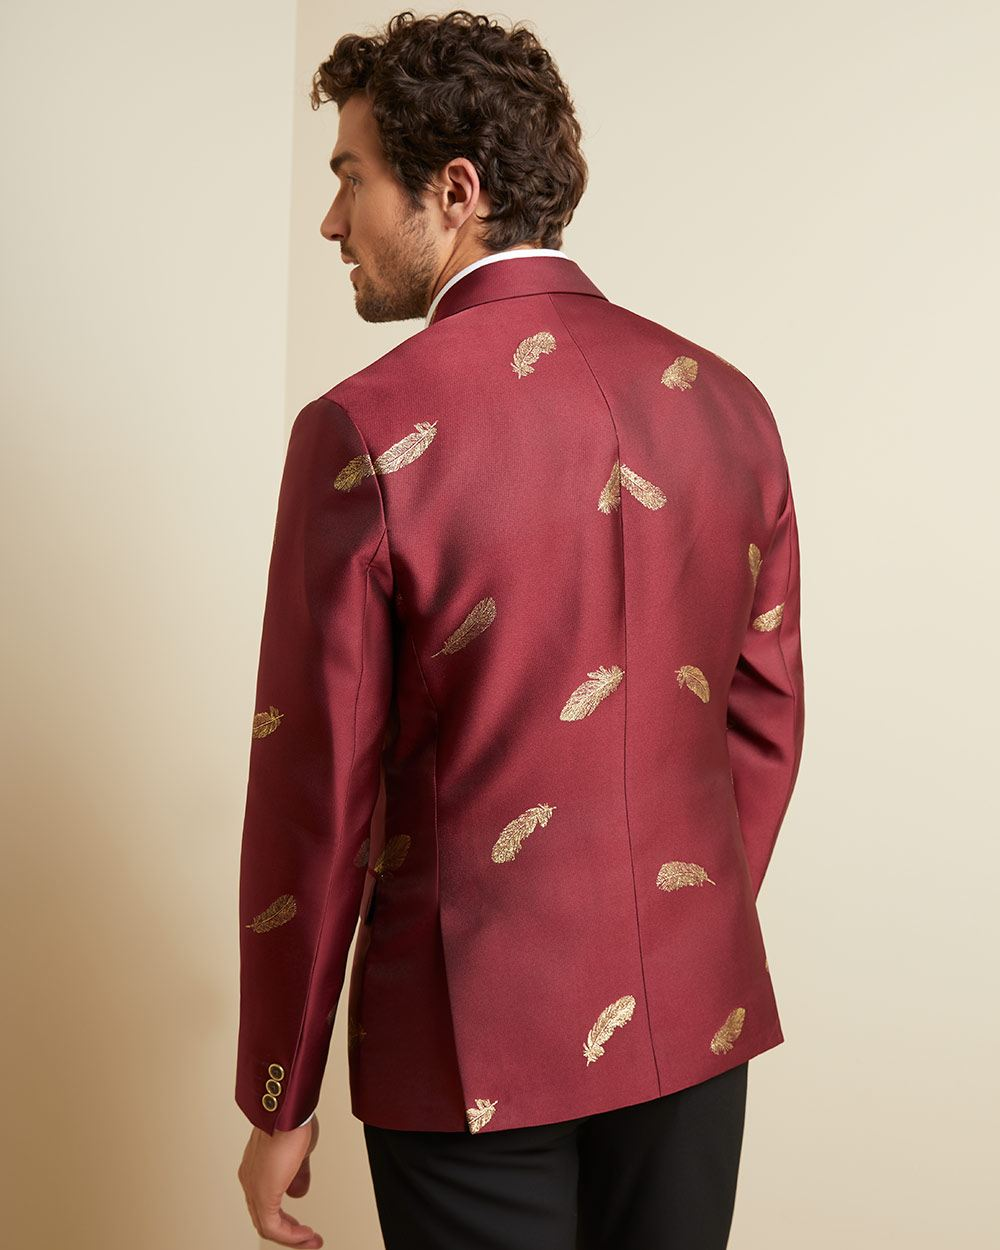 Slim fit bright red suit blazer with gold feathers